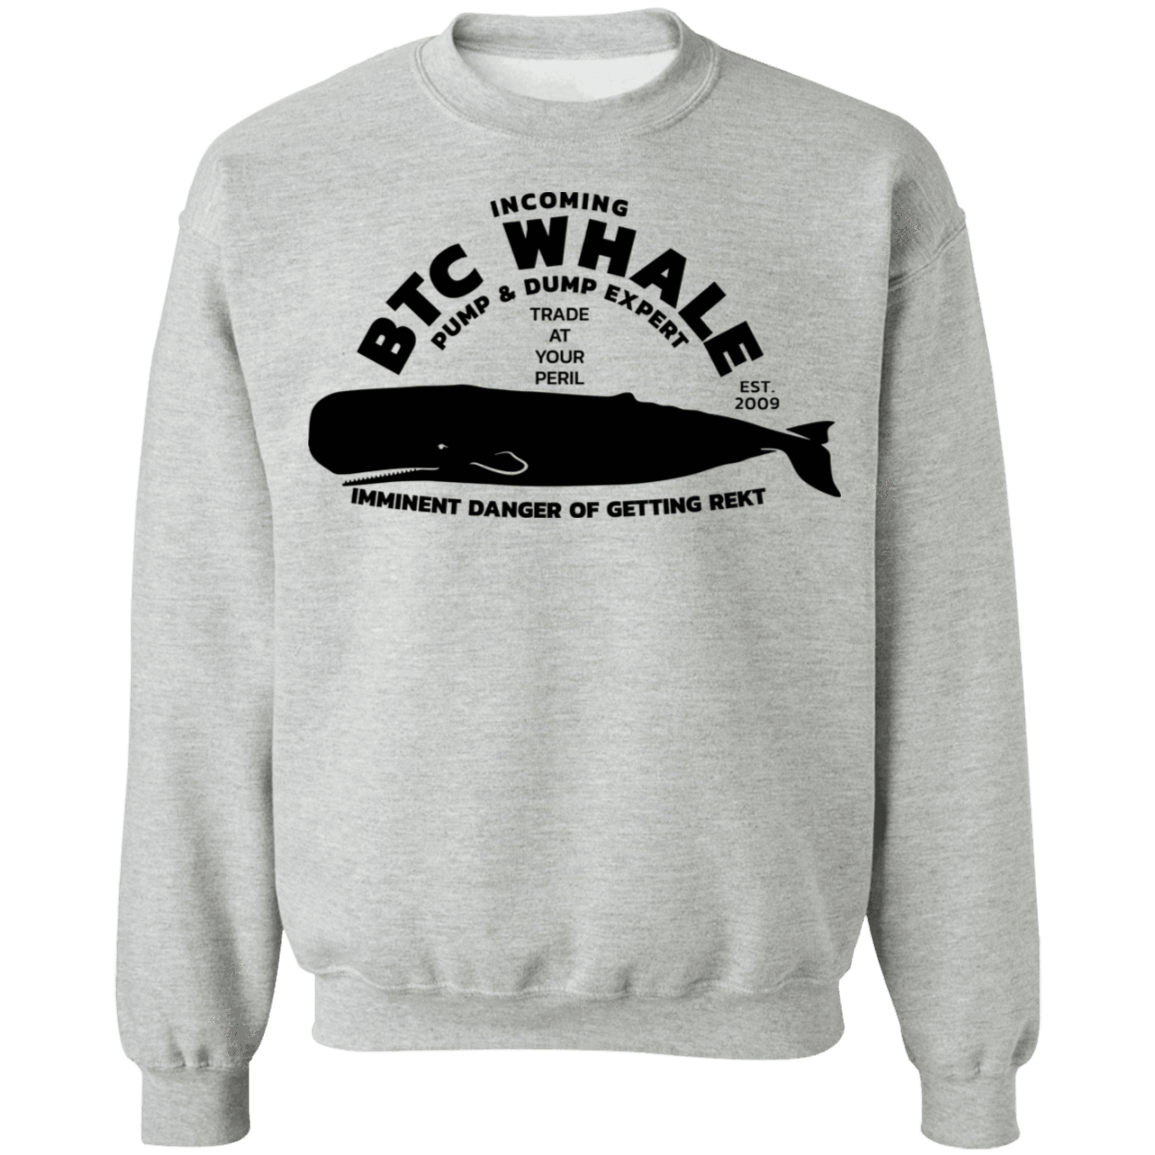 Bitcoin Sweatshirt Sport Grey / S Incoming BTC Whale Sweatshirt